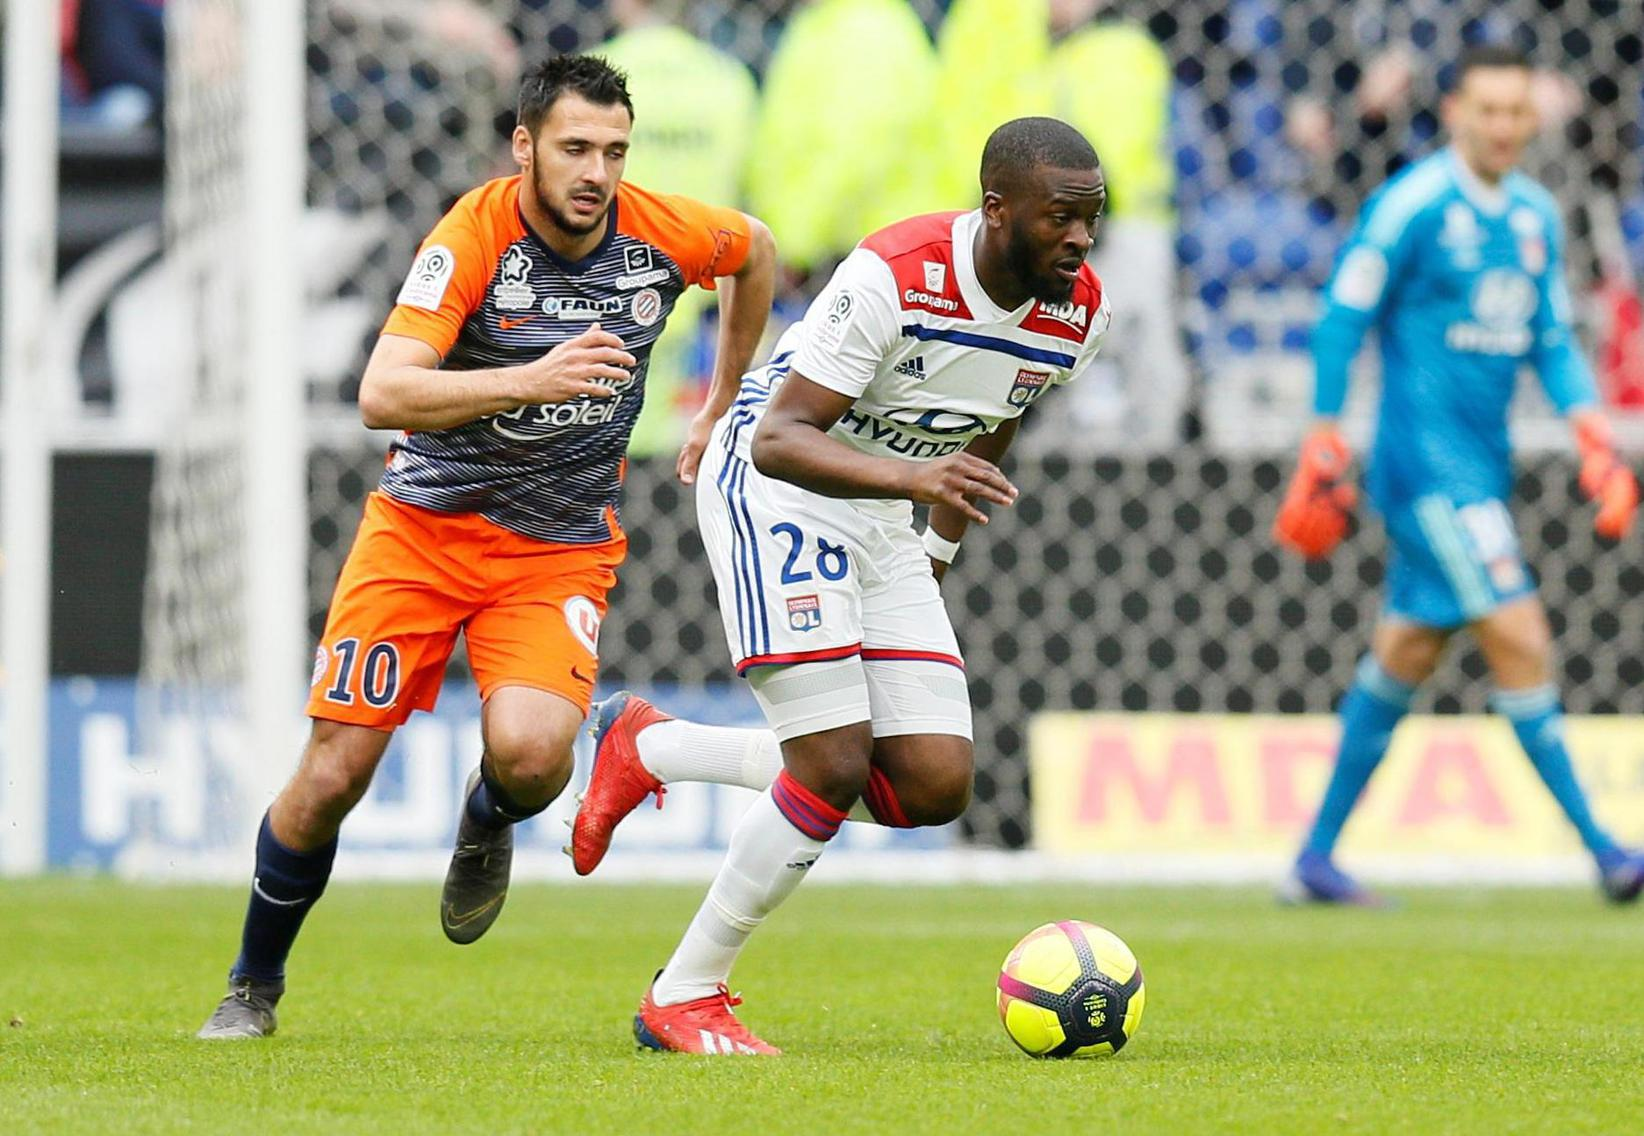 Anthony Faure À Lyon